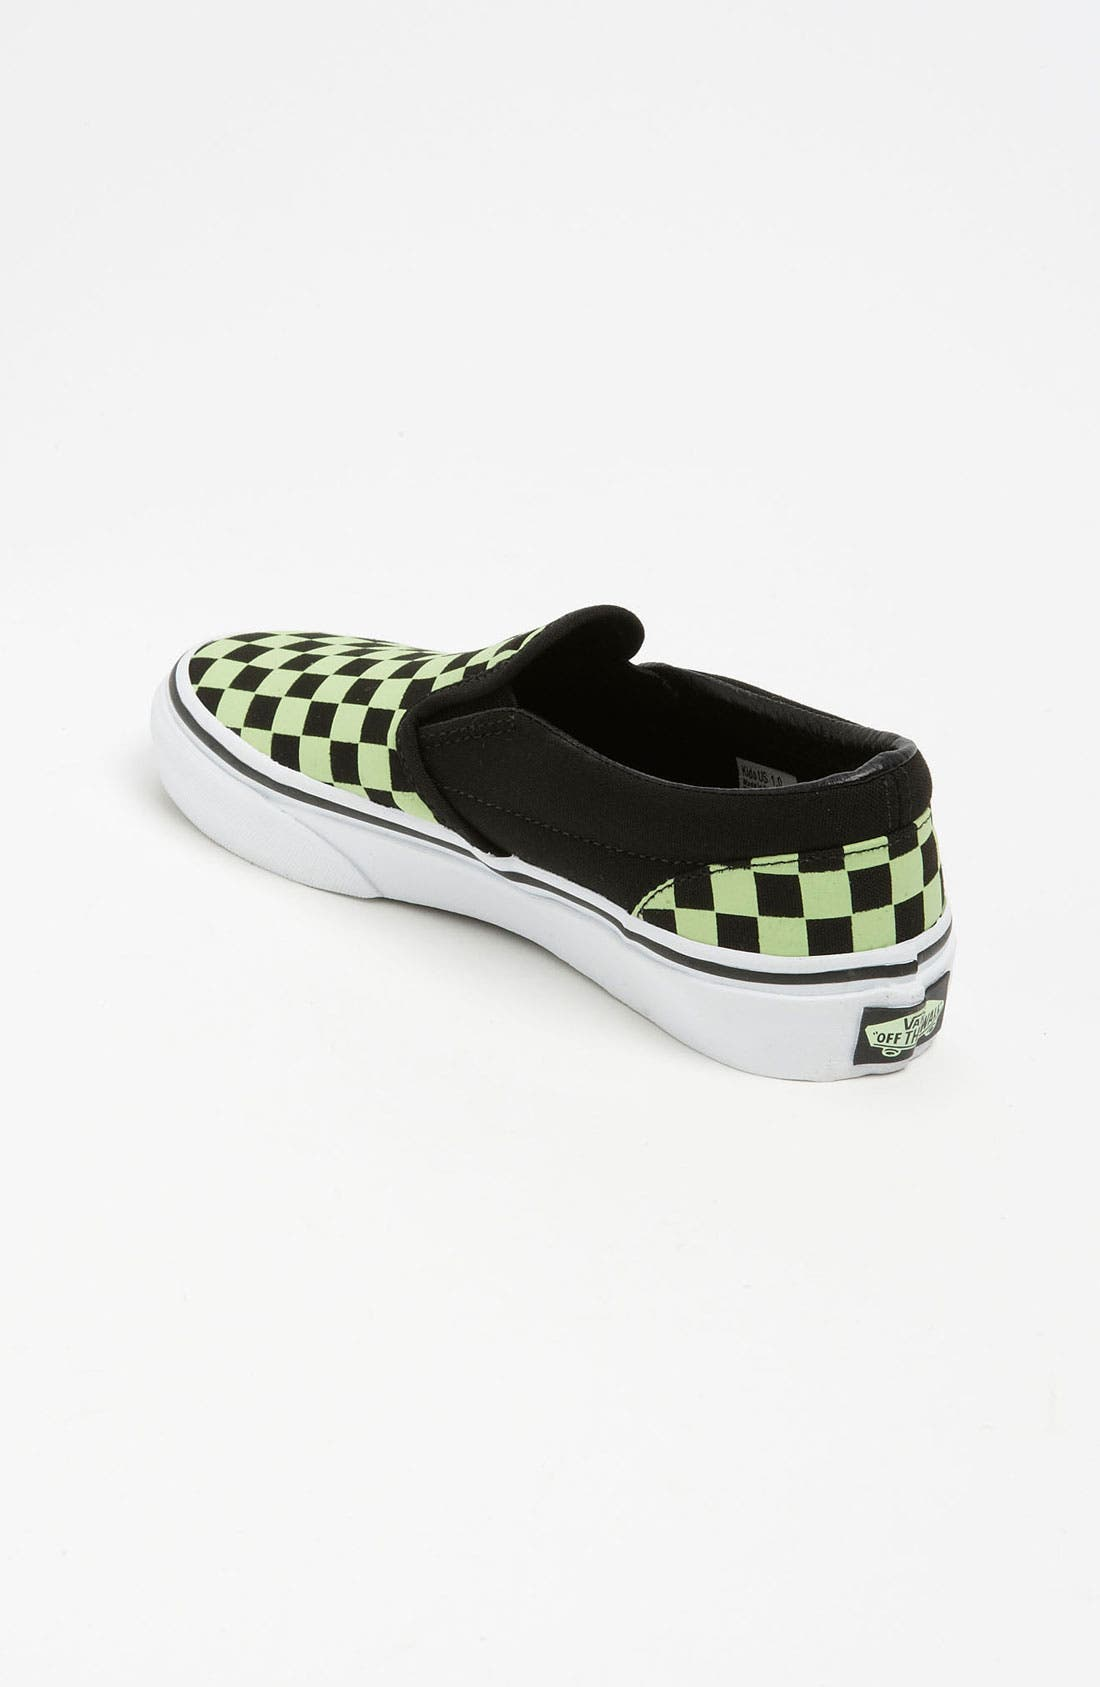 Alternate Image 2  - Vans 'Classic Checker - Glow in the Dark' Slip-On (Toddler, Little Kid & Bid Kid)